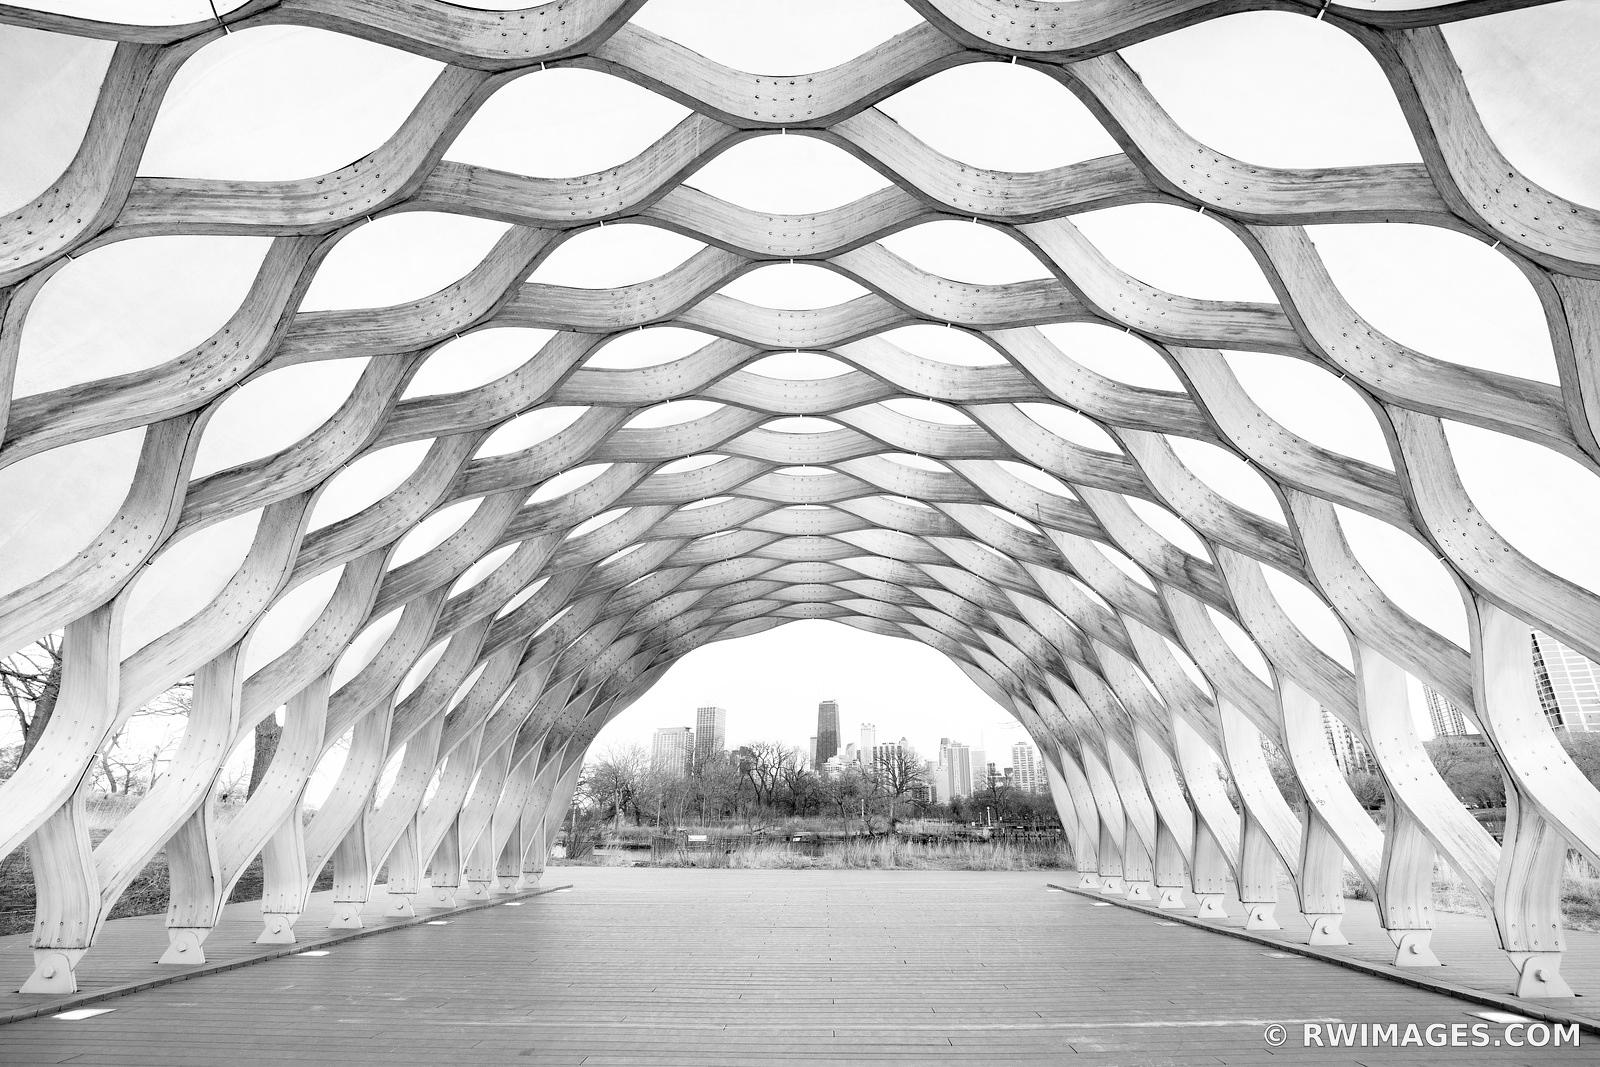 CURVACEOUS WOOD PAVILION HONEYCOMB STRUCTURE SOUTH LINCOLN PARK CHICAGO ILLINOIS BLACK AND WHITE